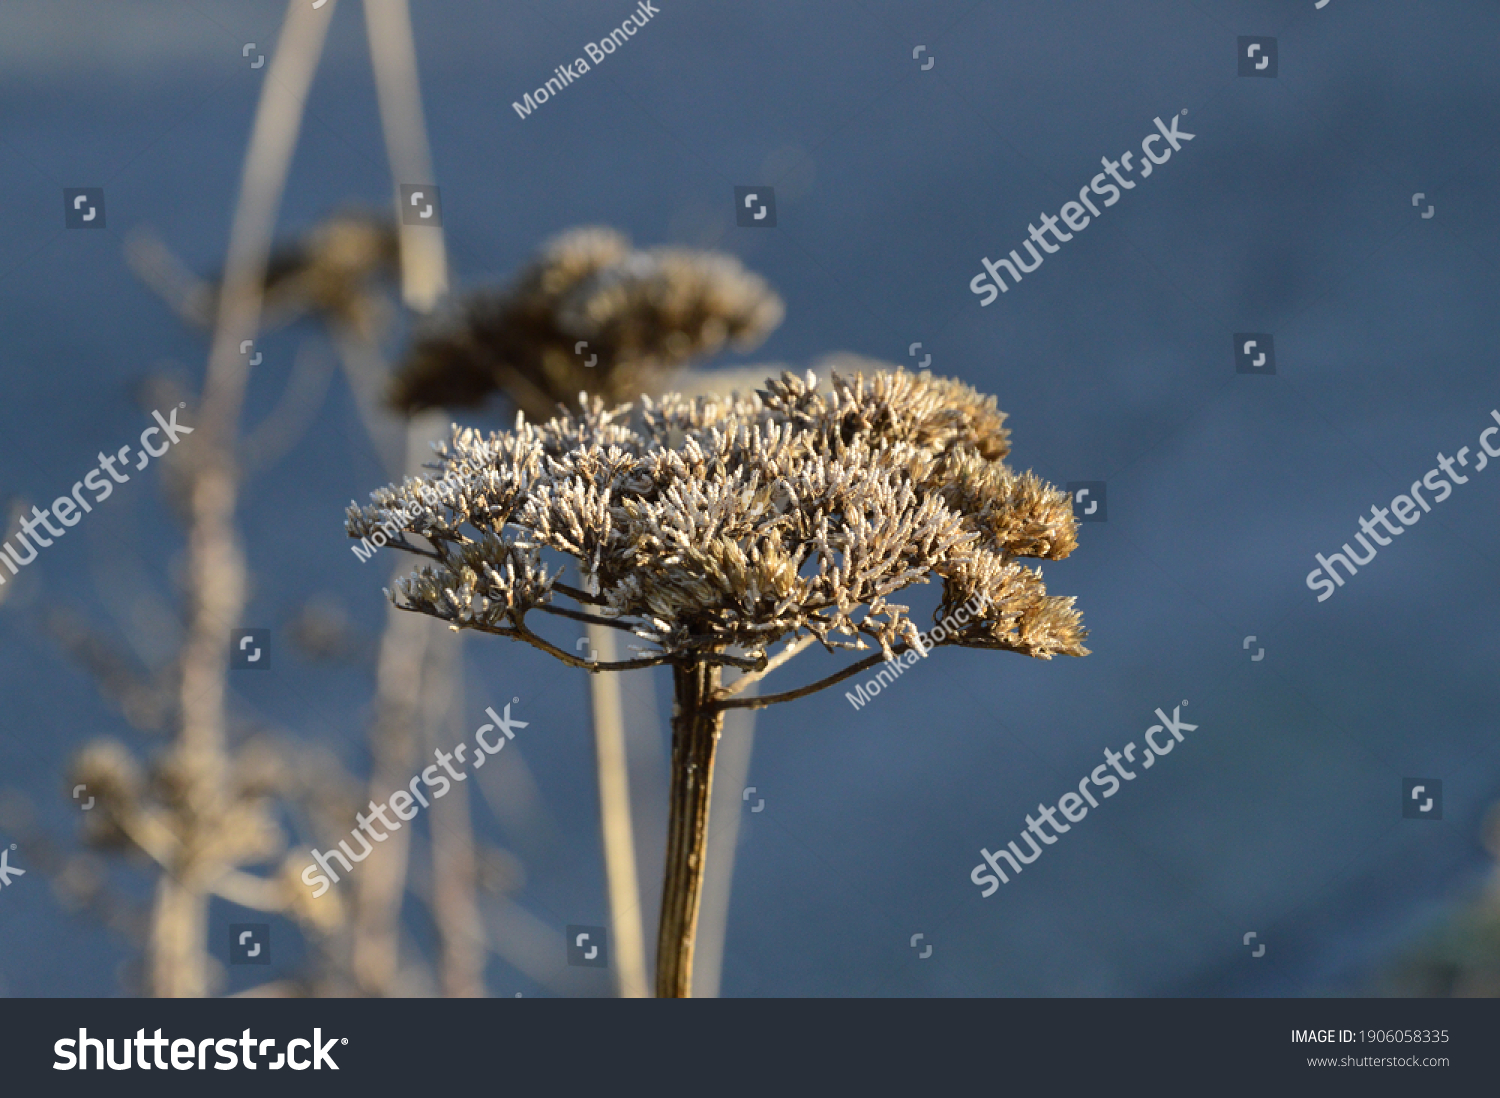 stock-photo-a-frozen-blossom-on-winter-m